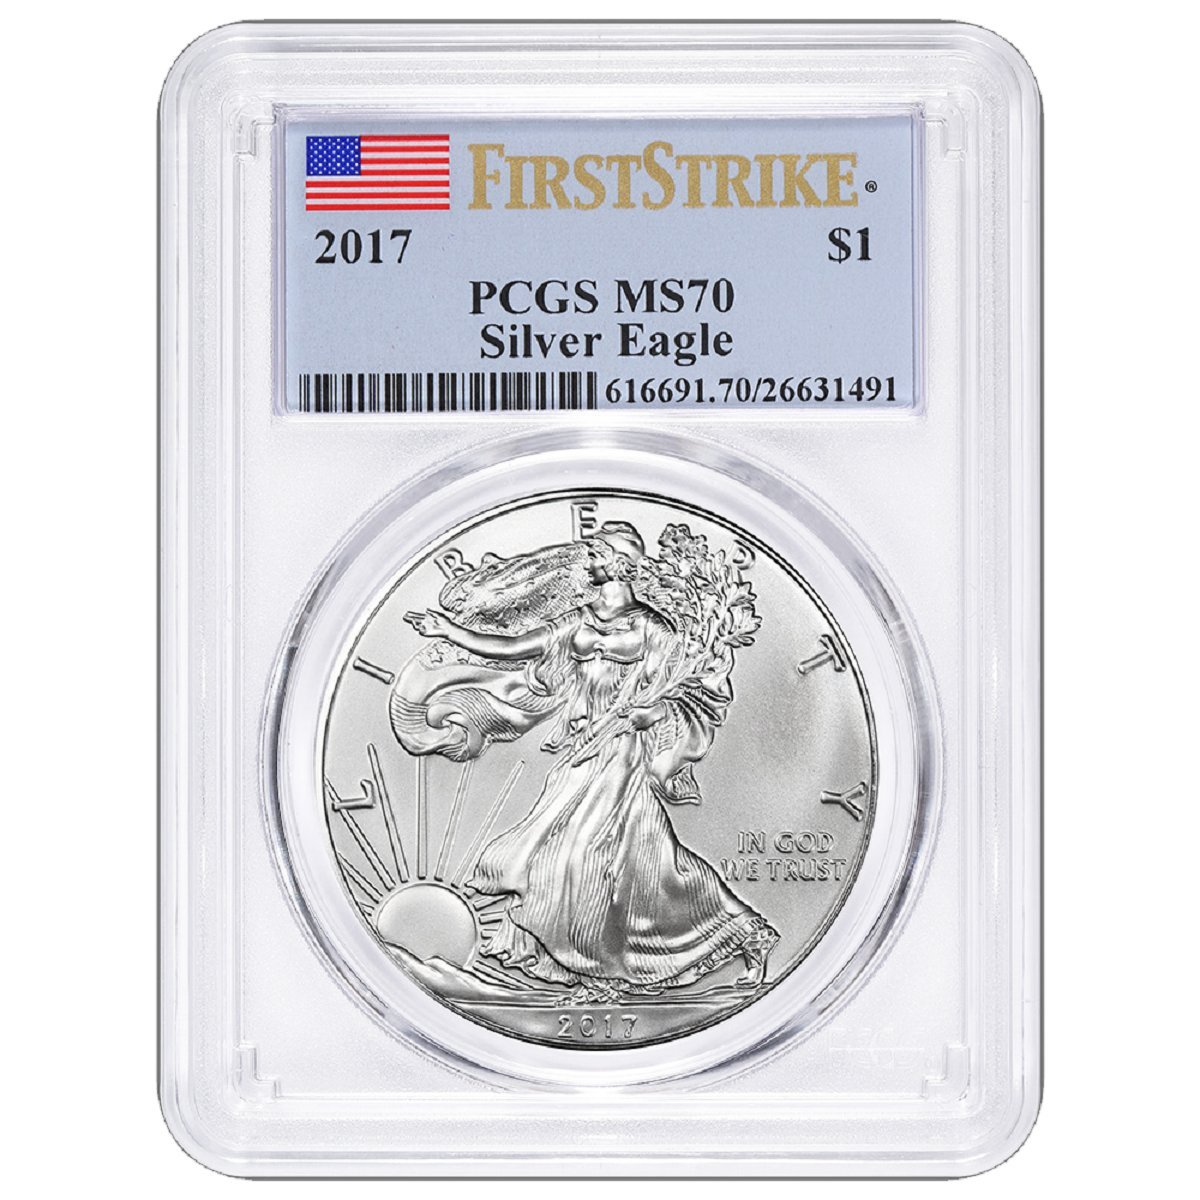 Silver Eagle First Strike